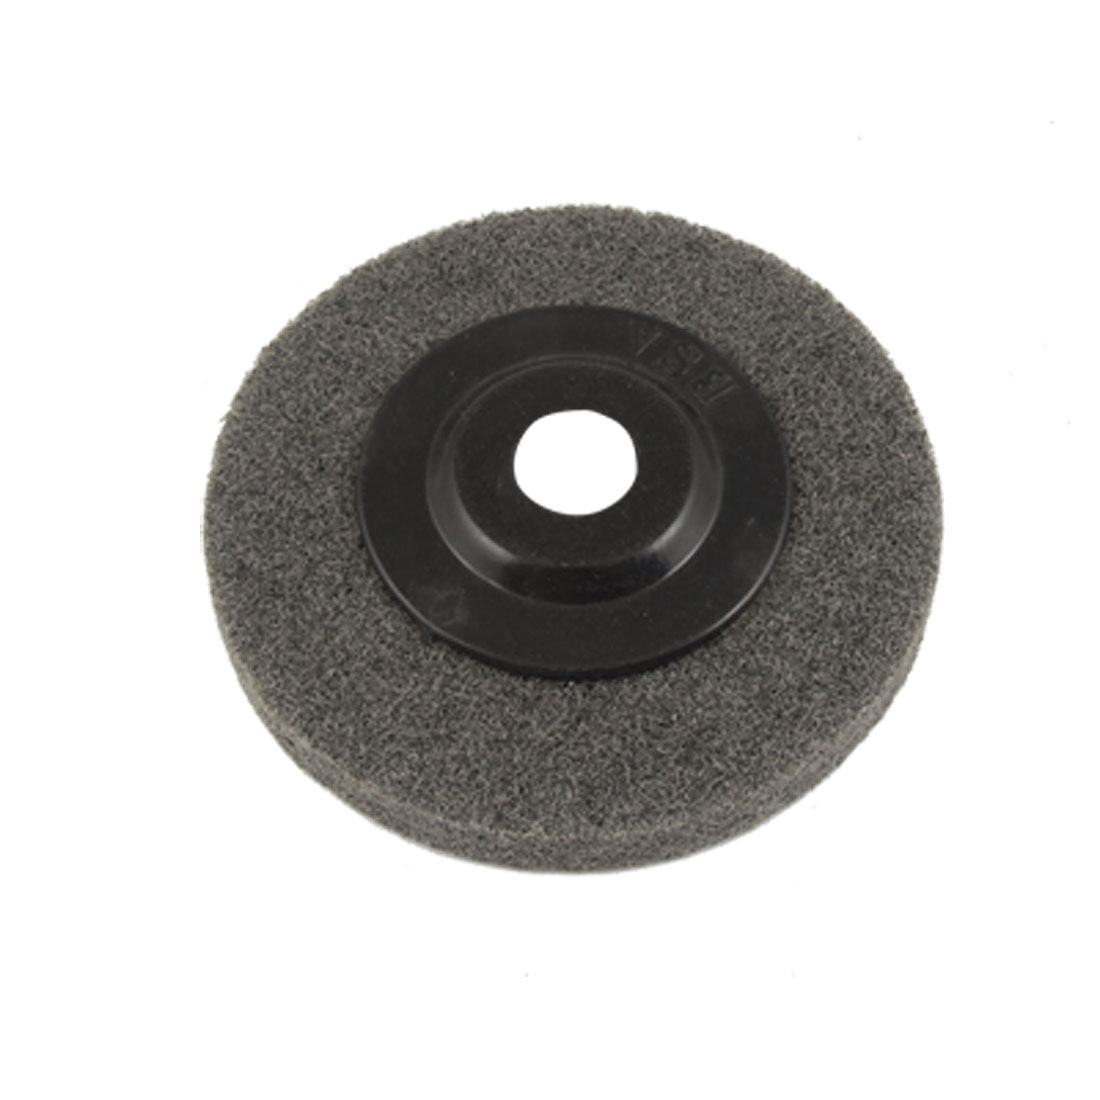 "Plastic Lid 4"" Outer Dia Nylon Polishing Grinding Wheel for Metal"